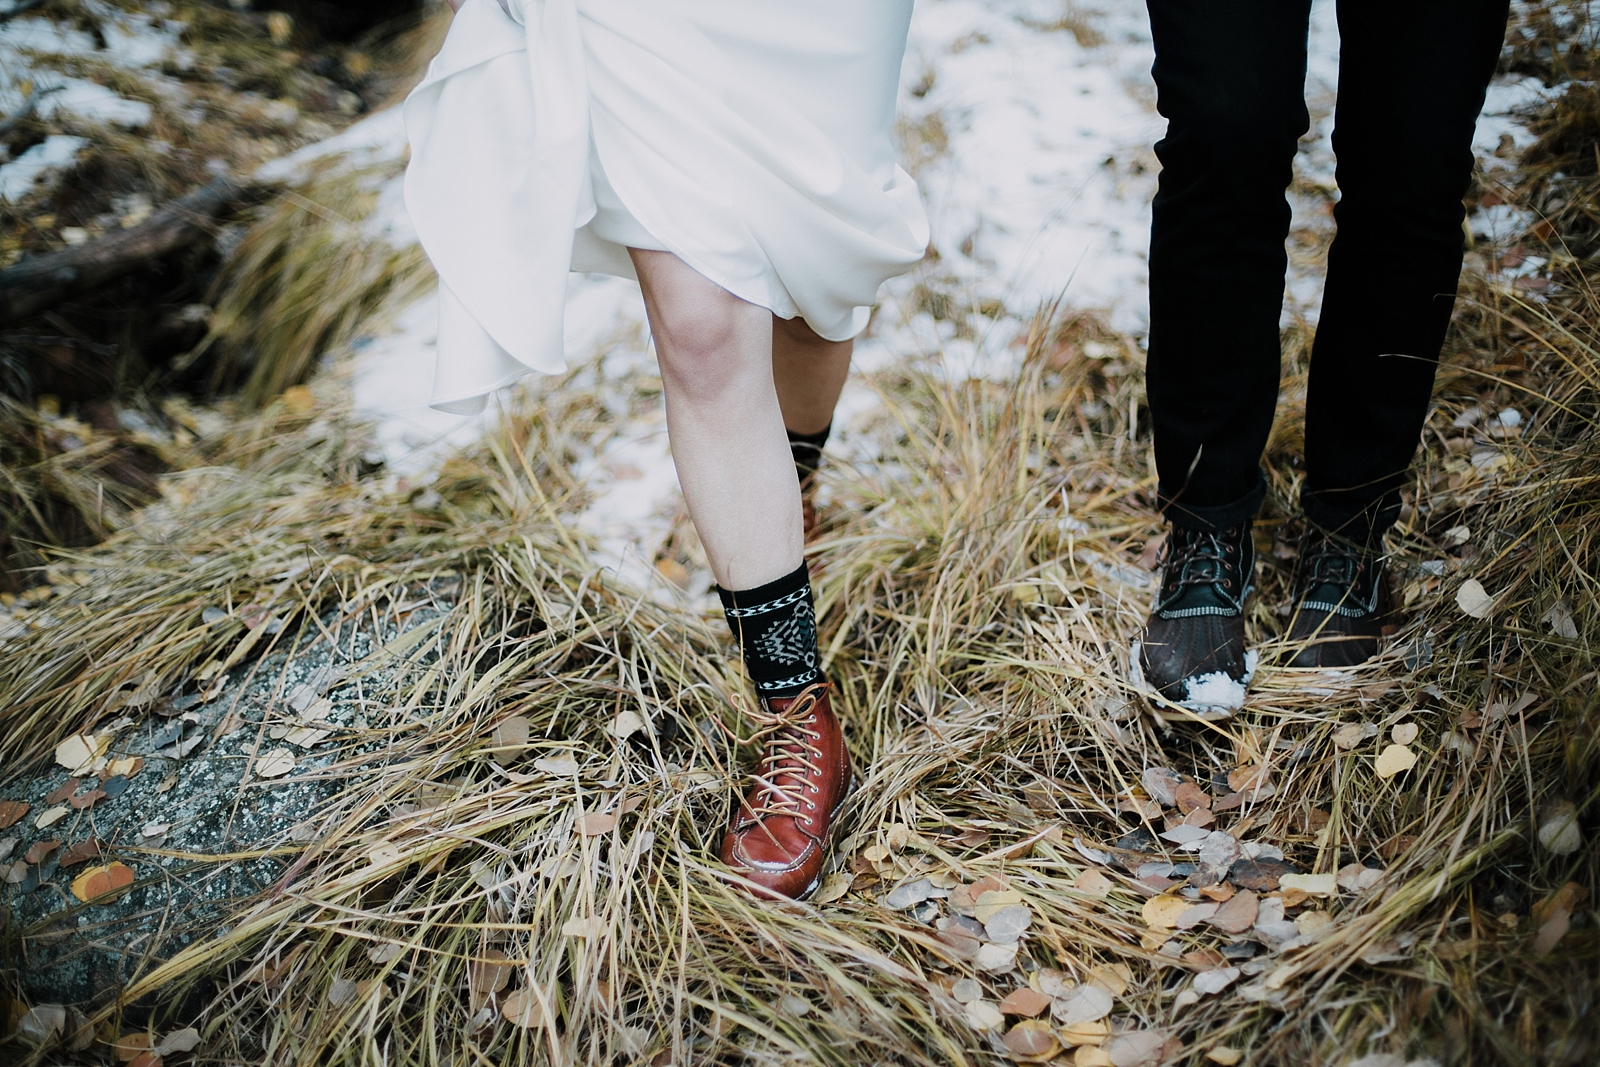 colorado-mountains-silverplume-camp-inspired-adventure-elopement_0013.jpg